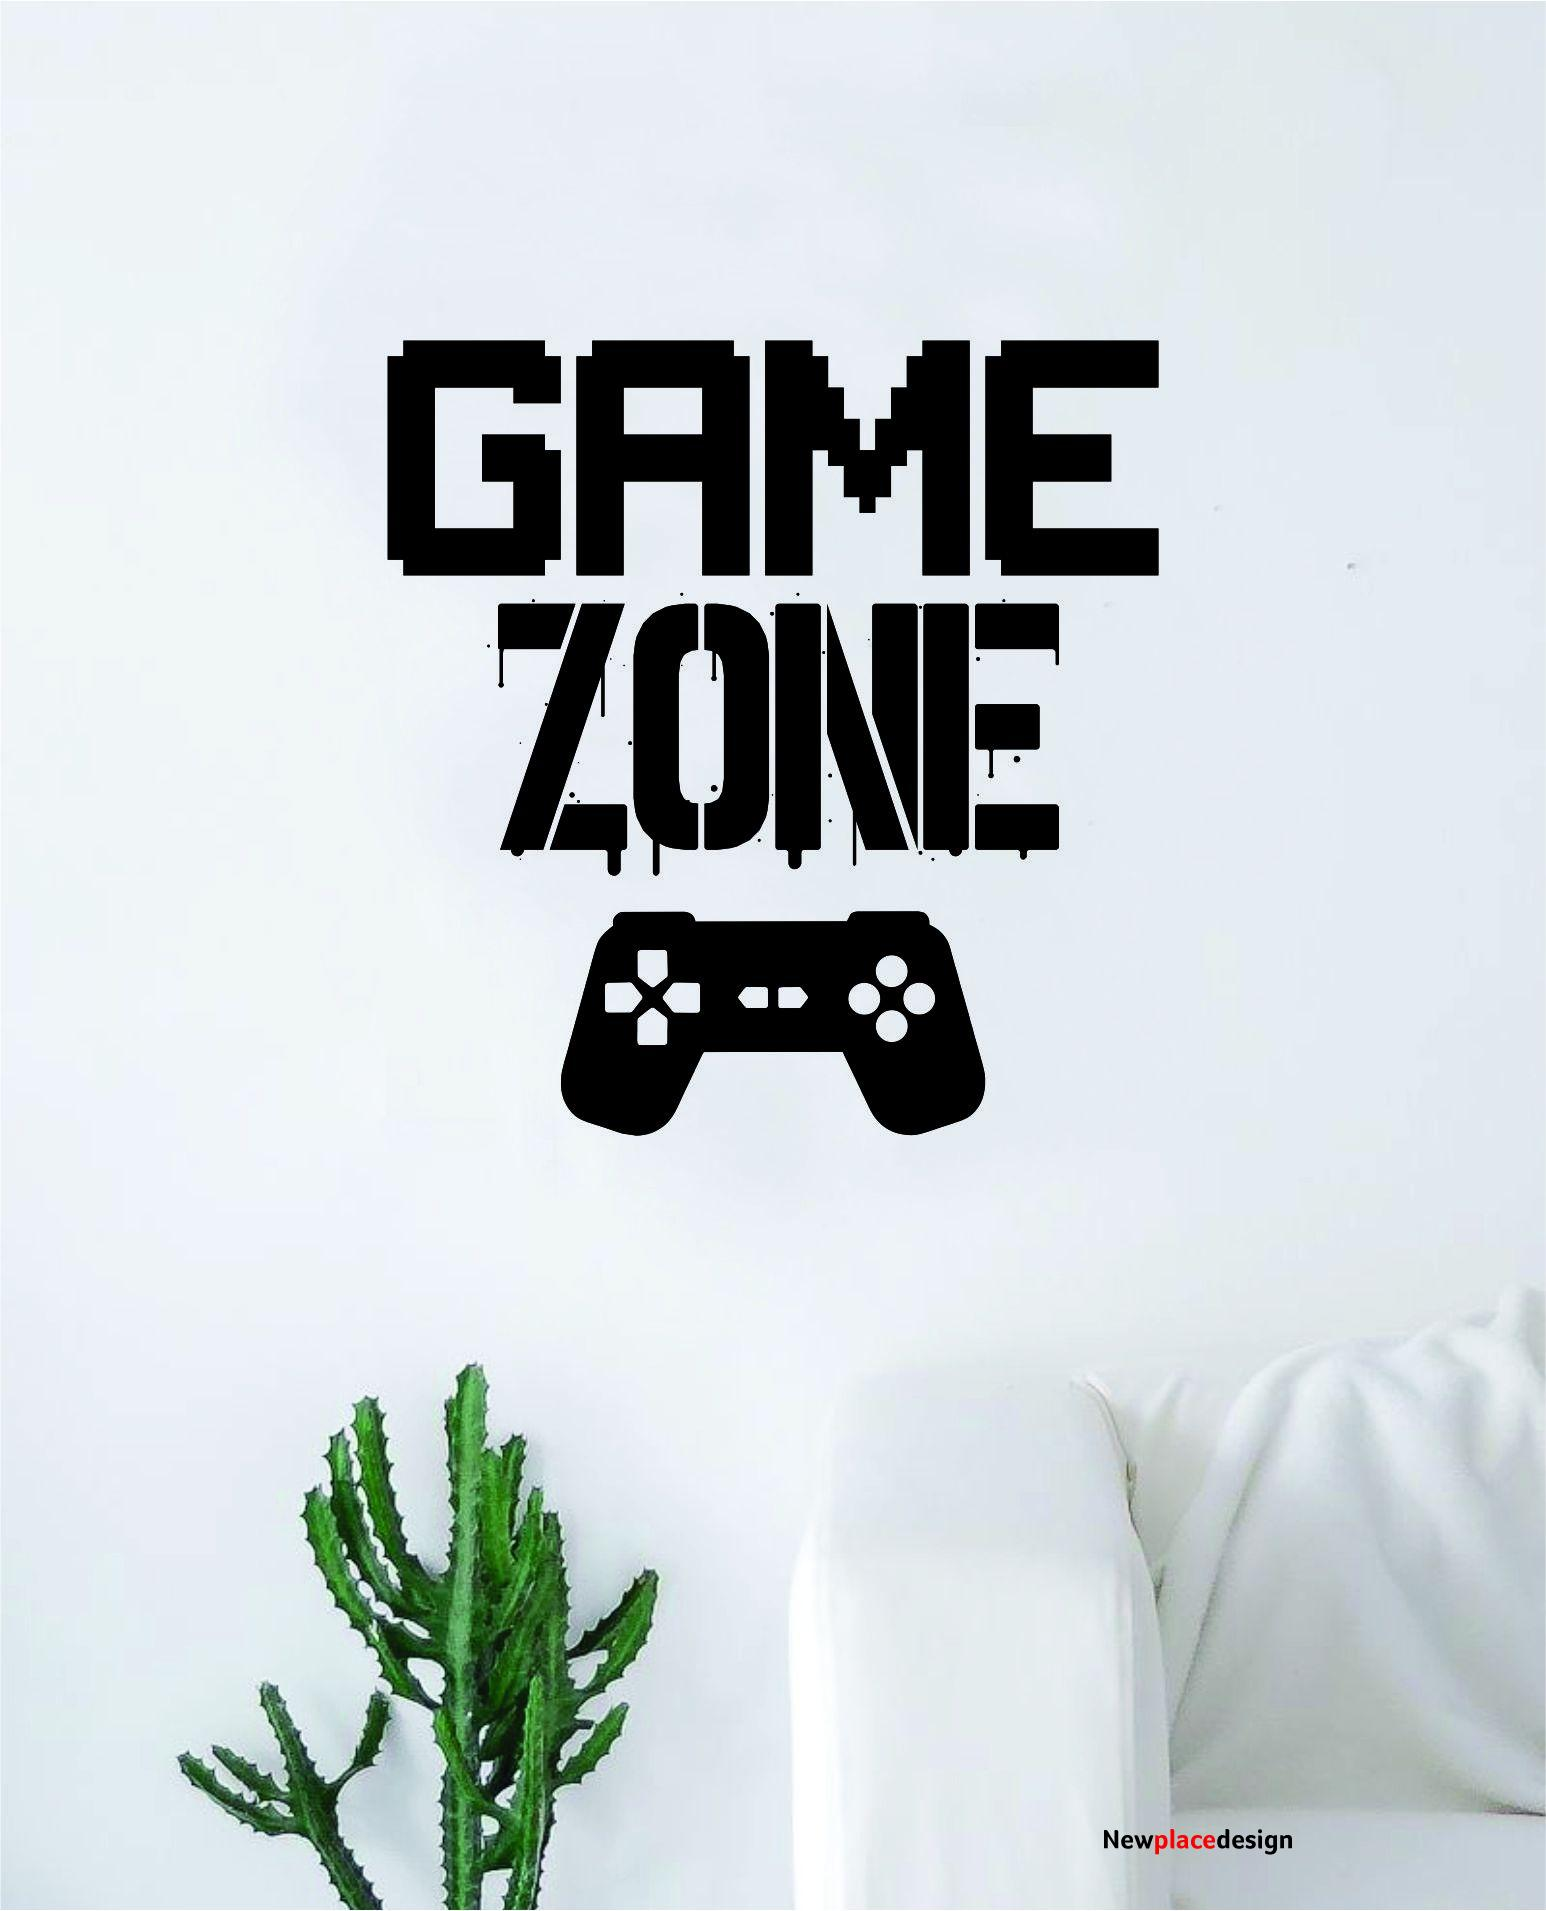 Game Zone V2 Wall Decal Quote Home Room Decor Decoration Art Vinyl Sticker Funny Gamer Gaming Nerd Geek Teen Video Kids - saphire blue